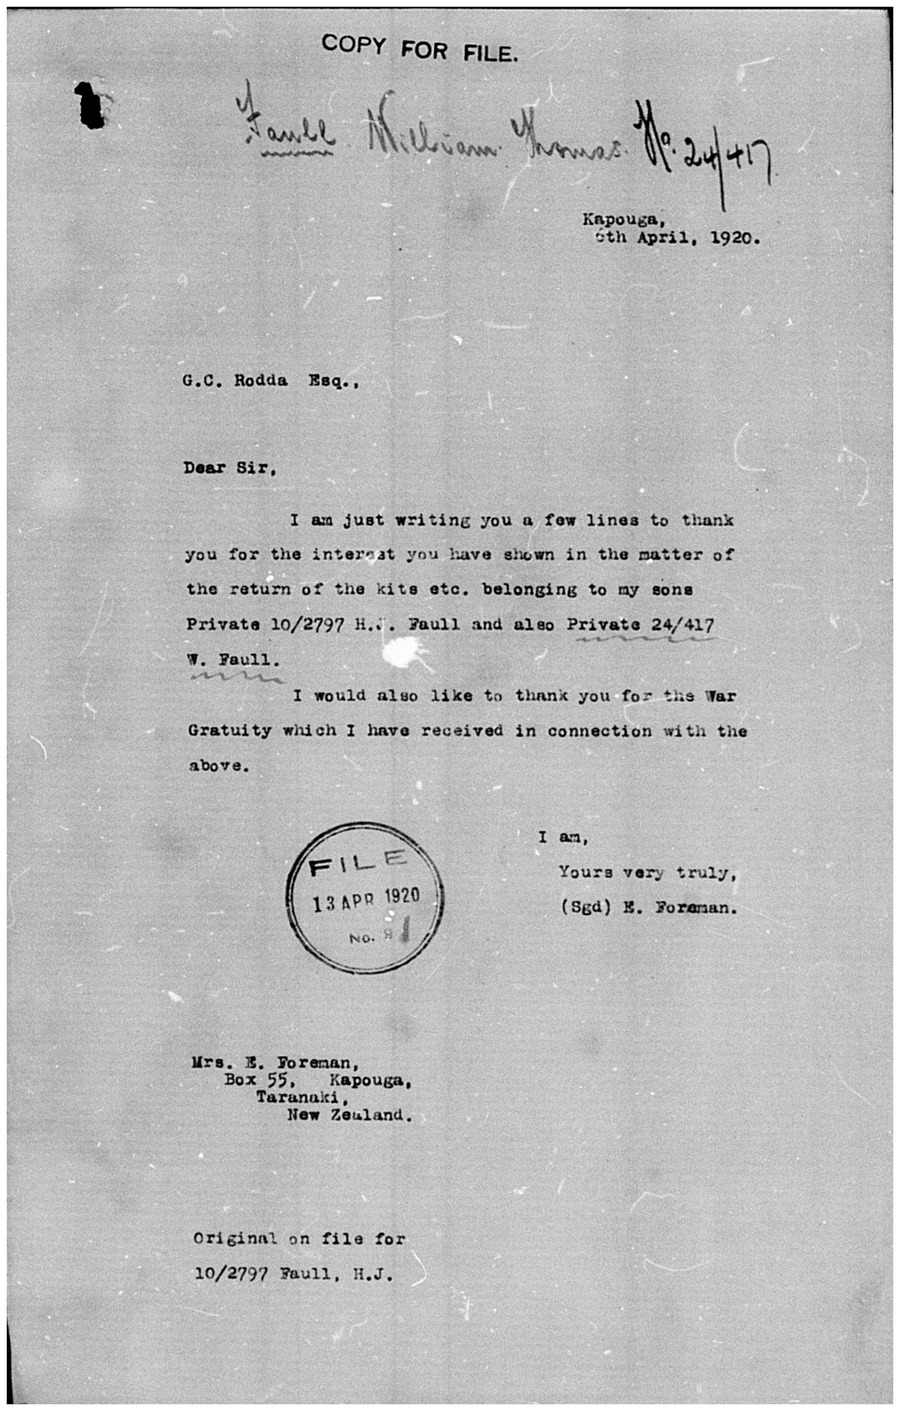 Letter written by Elizabeth Ann Foreman in 1920 relating to her sons' war kits and a war gratuity